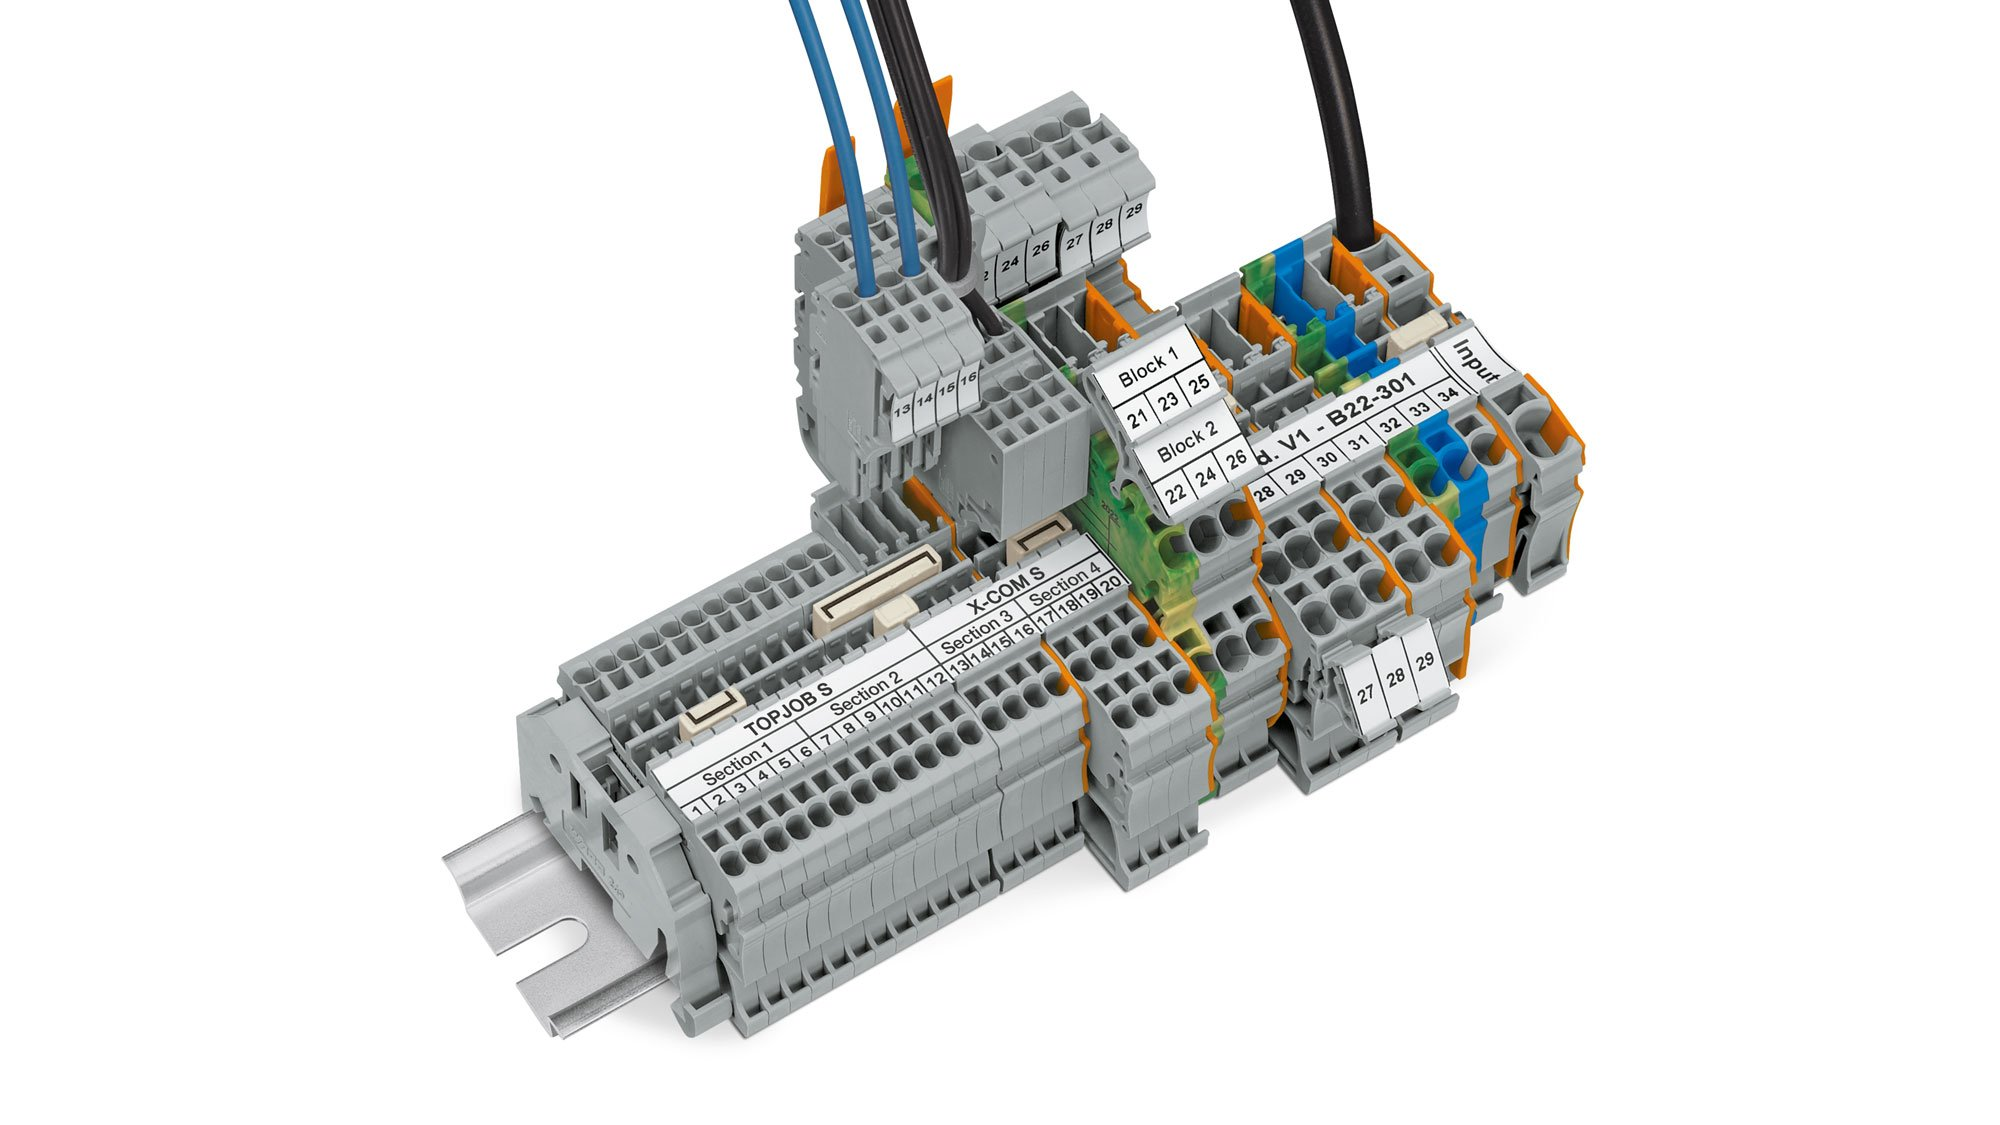 Wago Pluggable Rail Mount Terminal Blocks For Time Saving Marine Block Wiring All Products